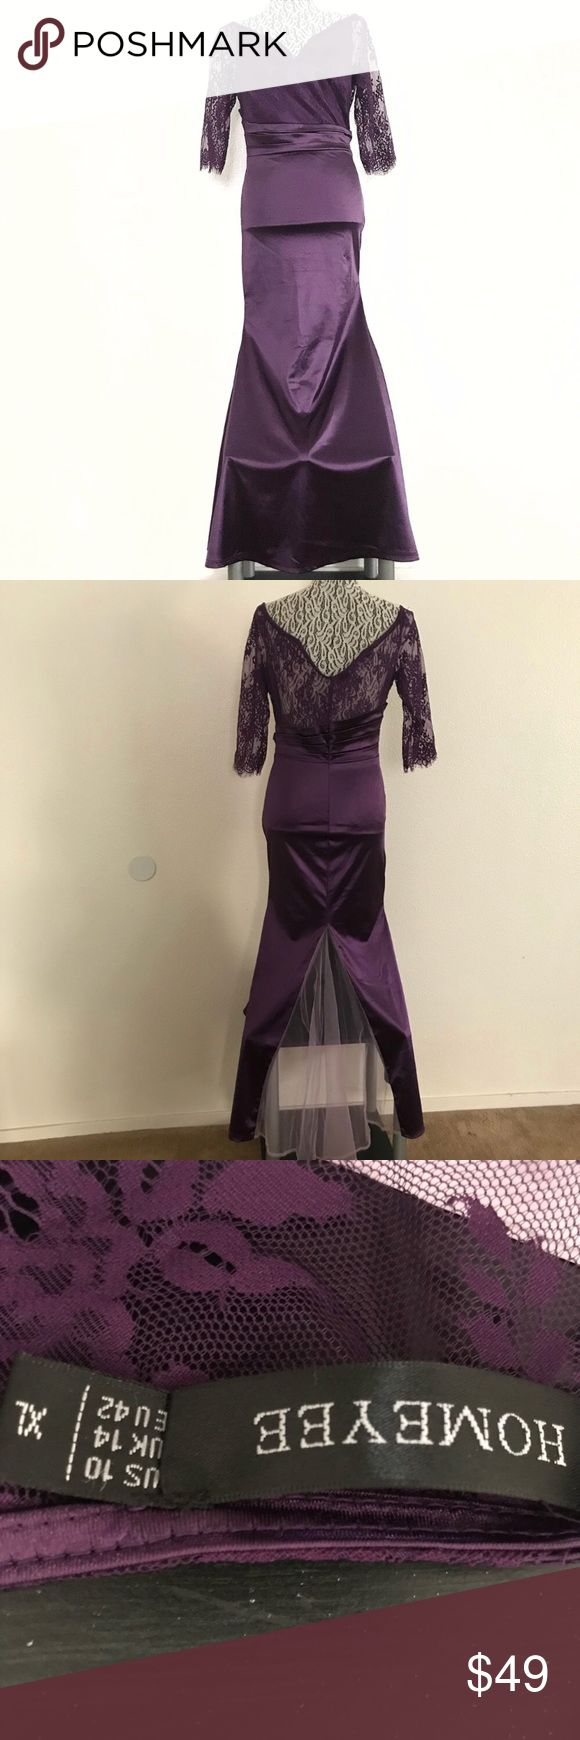 "Homeyee lace sleeve satin dress size 10 XL Pit to pit 18"" Waist 26"" Sleeve 15"" Top length 12"" Skirt length 42""  NYE New Year's eve outfit , Pantone Ultraviolet, prom or homecoming dress Homeyee Dresses Prom"